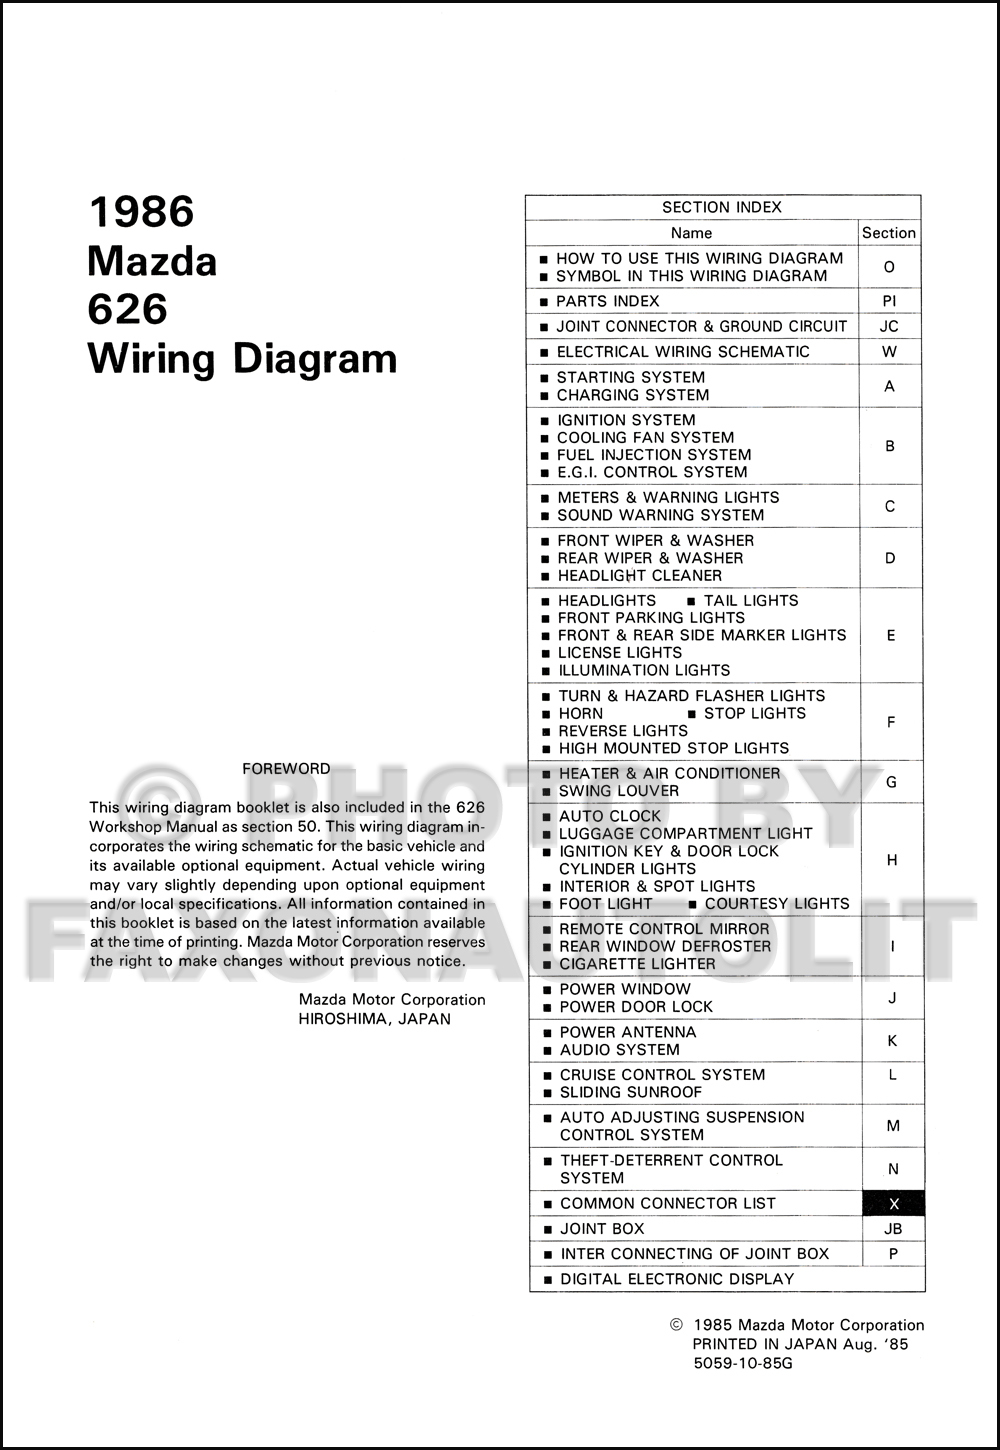 1986 Mazda 626 Wiring Diagram Manual Original. click on thumbnail to zoom